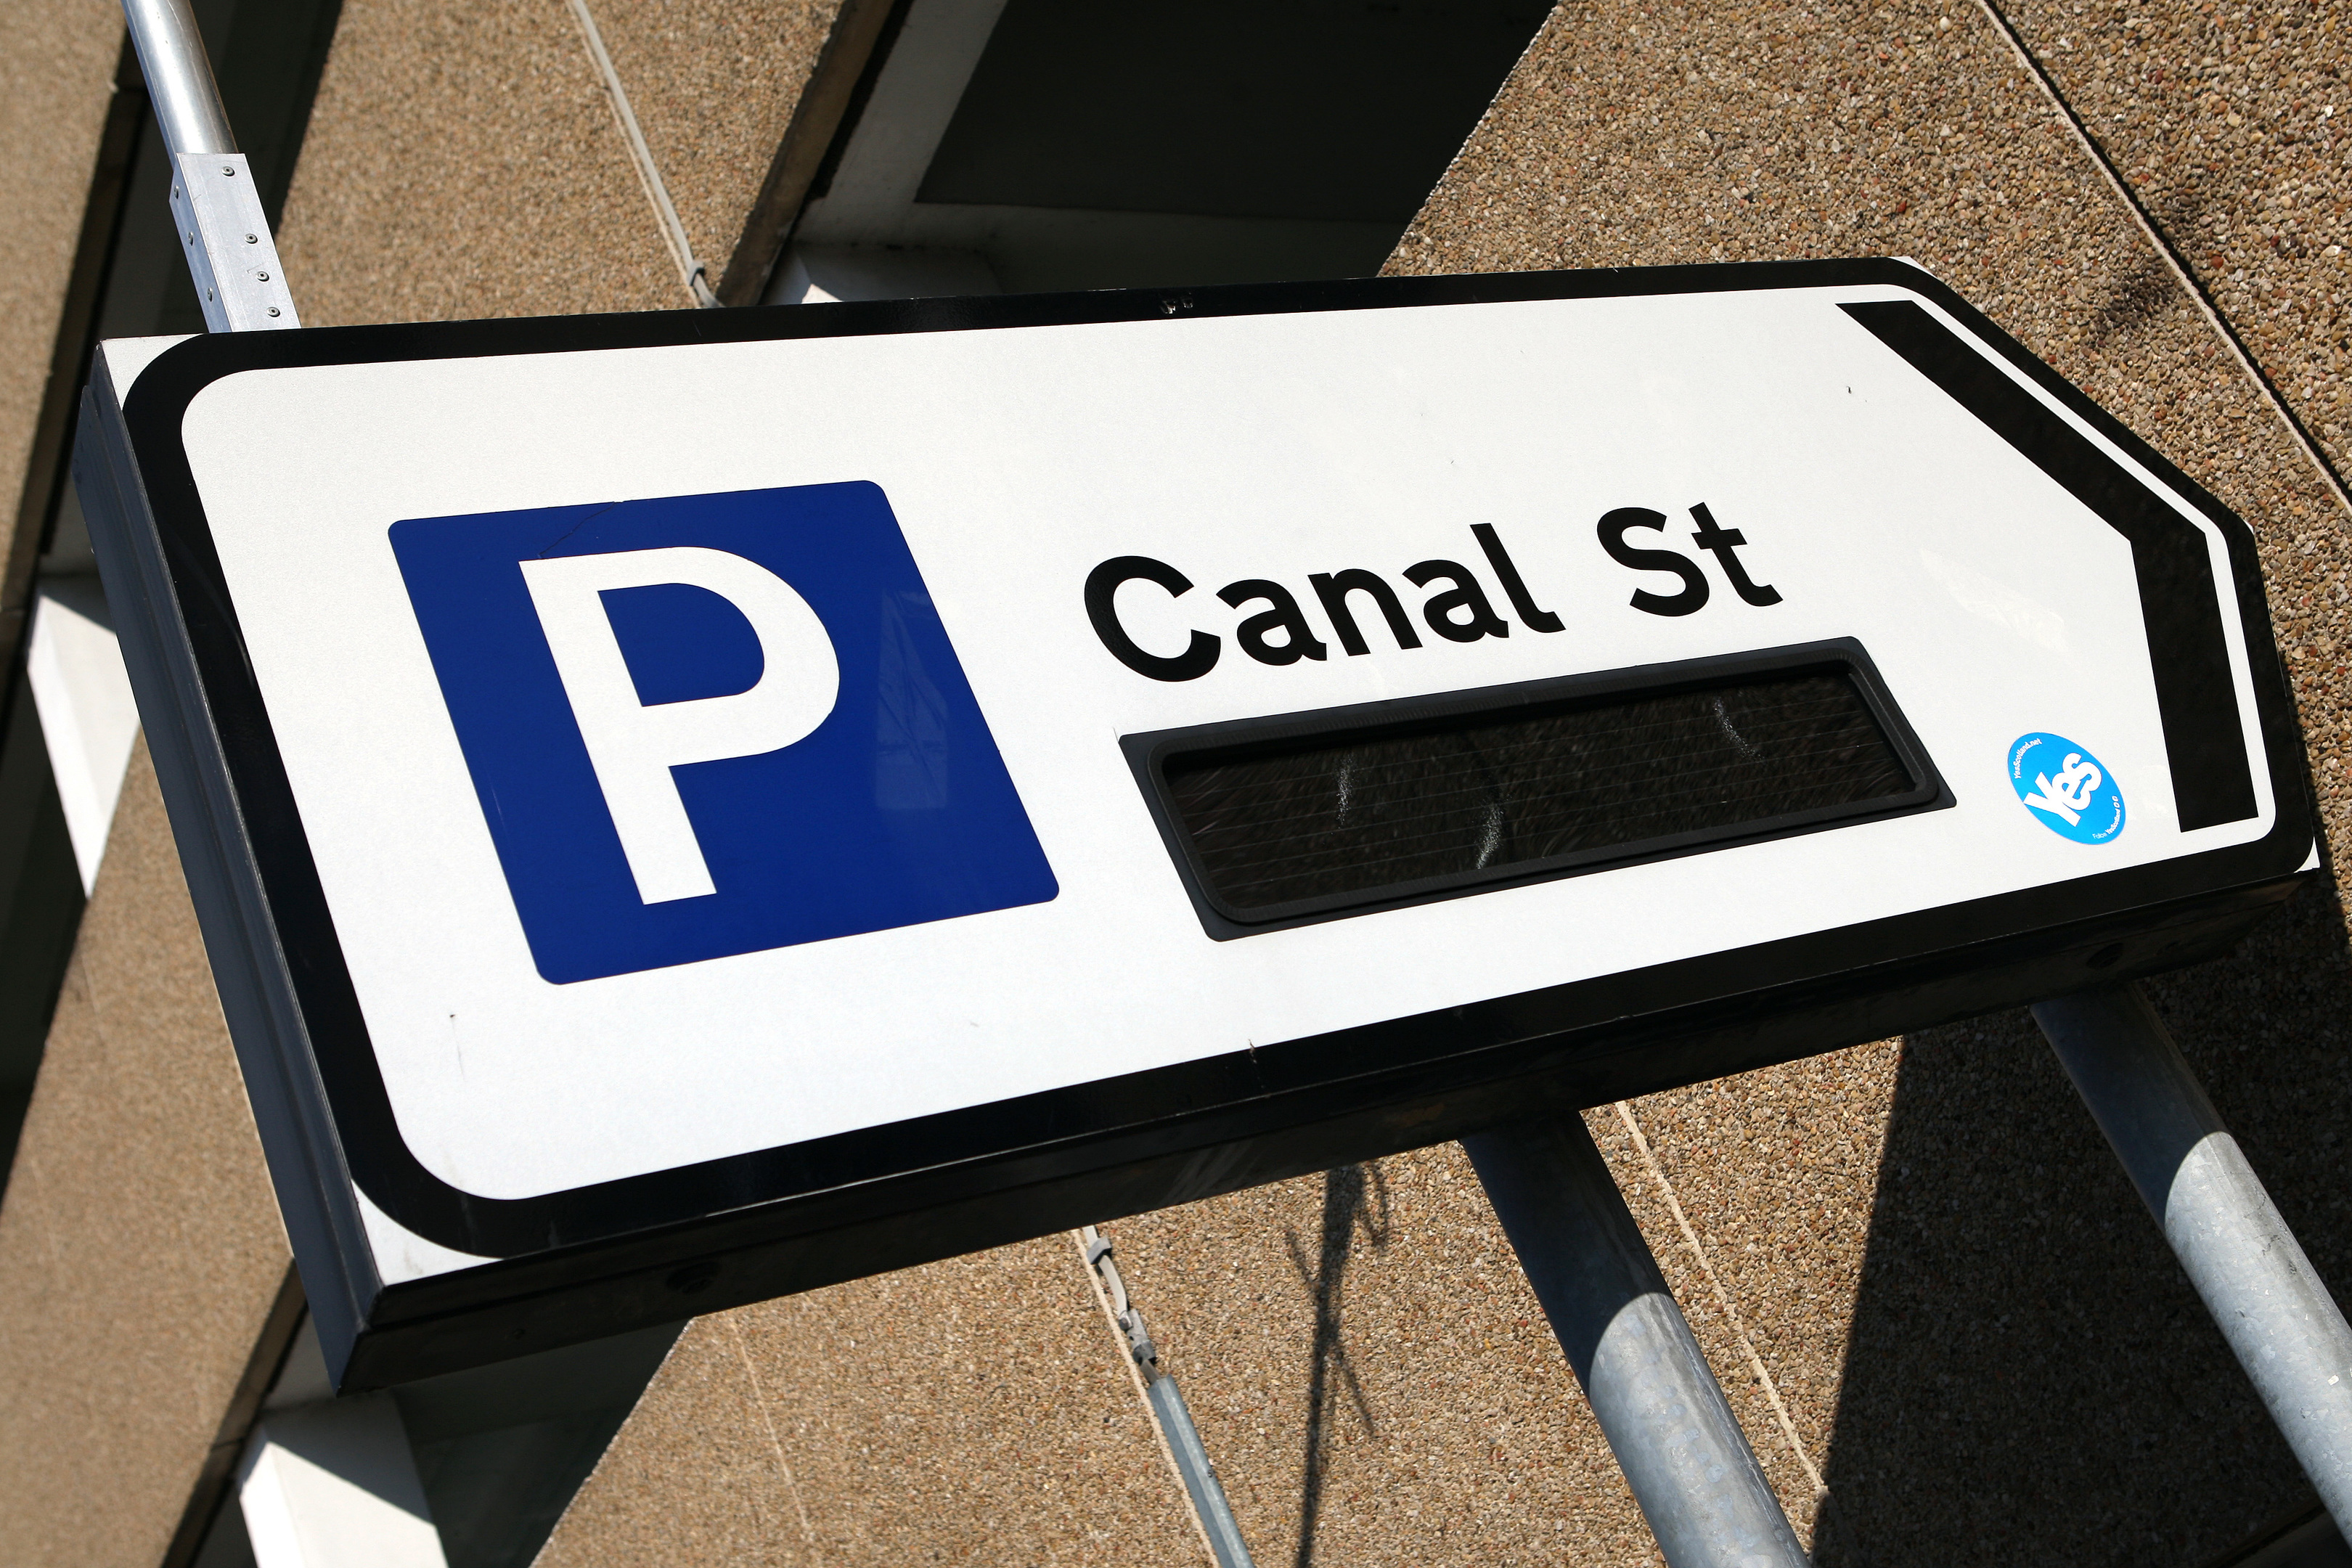 Canal Street multi-storey car park is among those included.